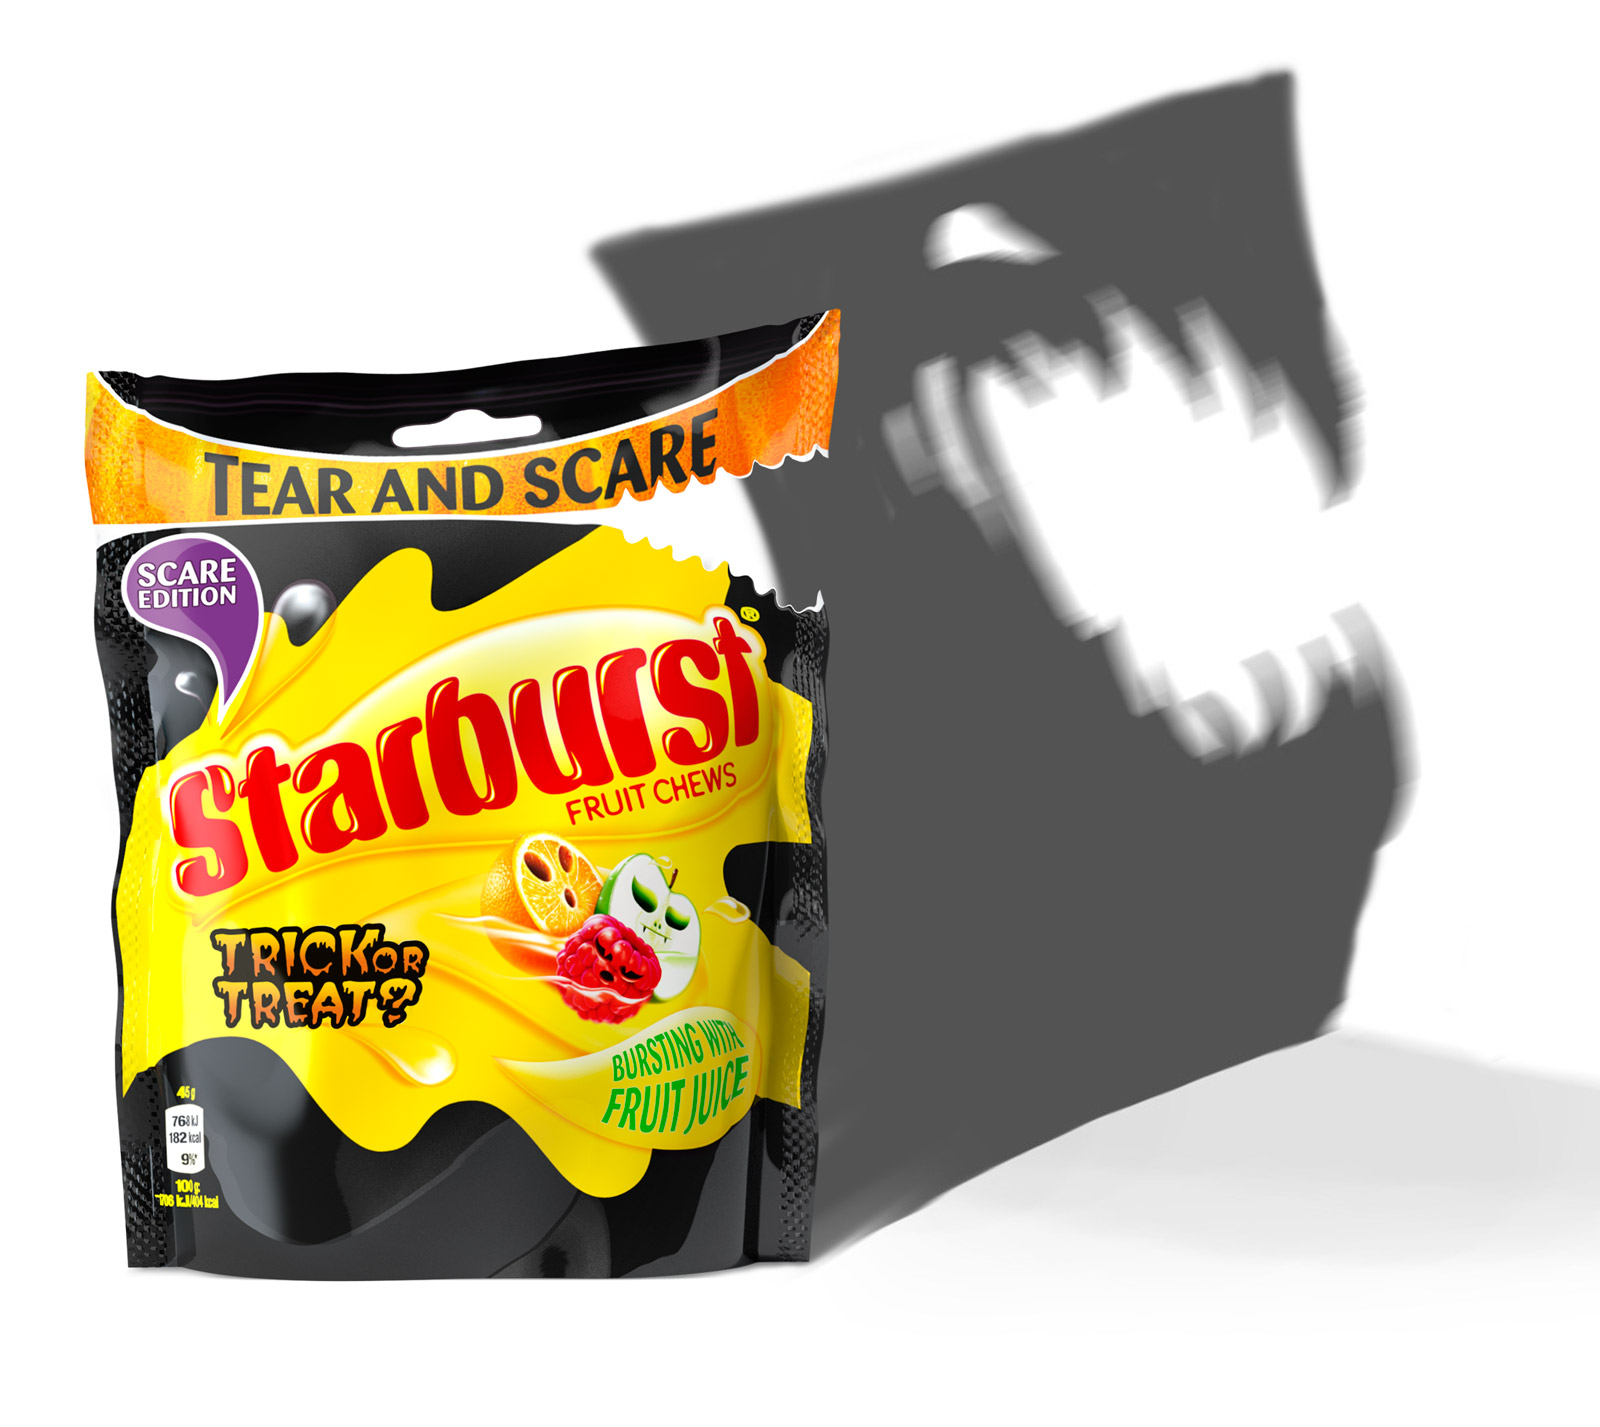 2014 Starburst Halloween Packaging Launch - Spooky Shadow